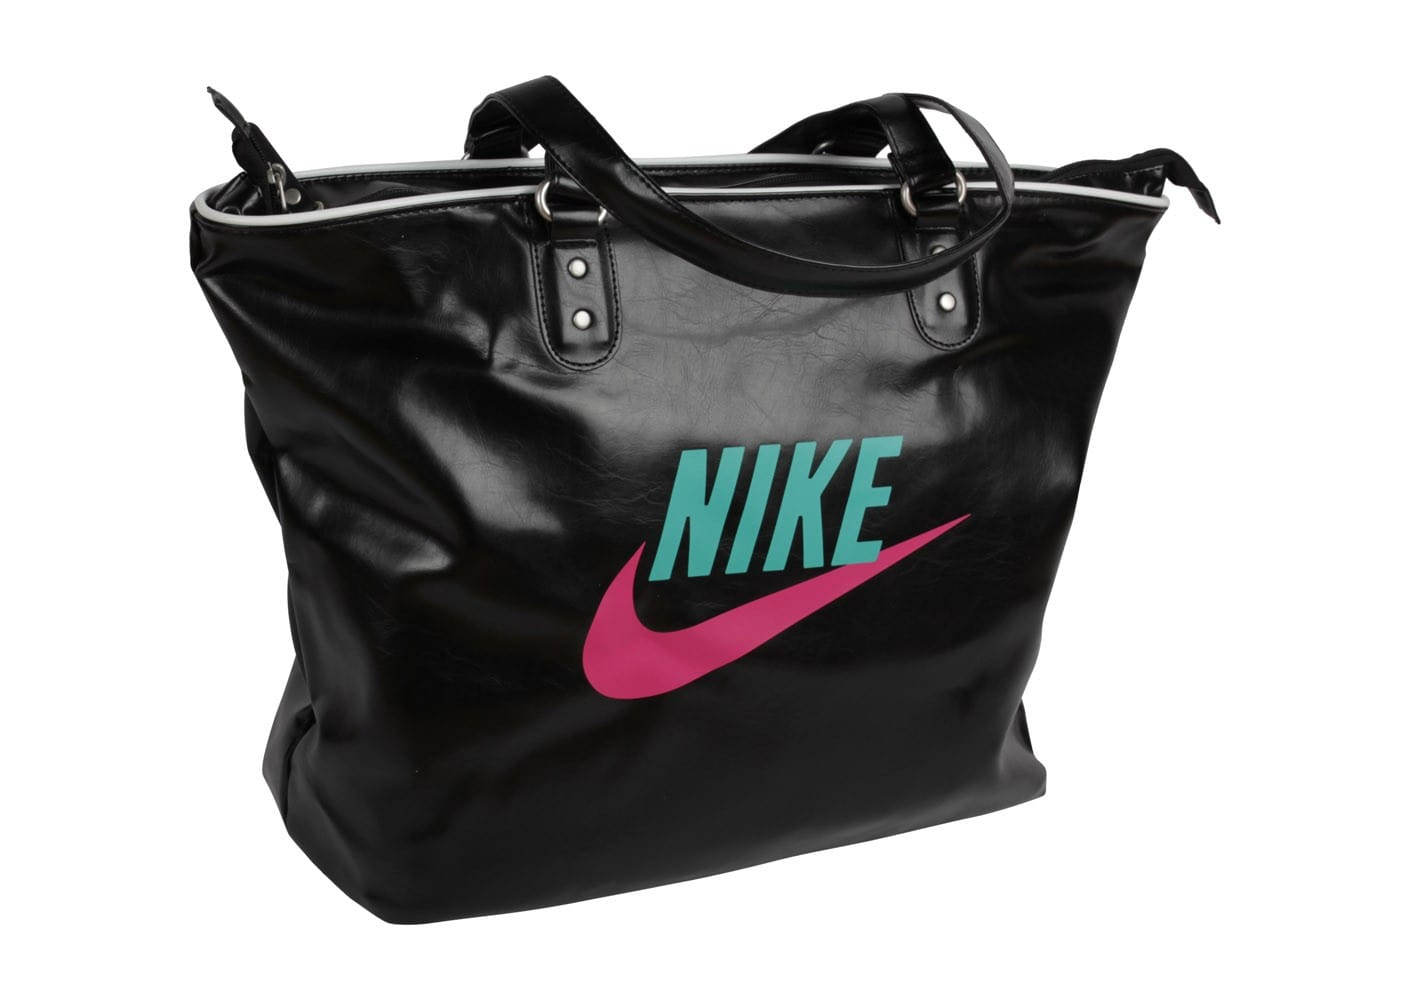 nike sac main heritage tote noir accessoires chausport. Black Bedroom Furniture Sets. Home Design Ideas